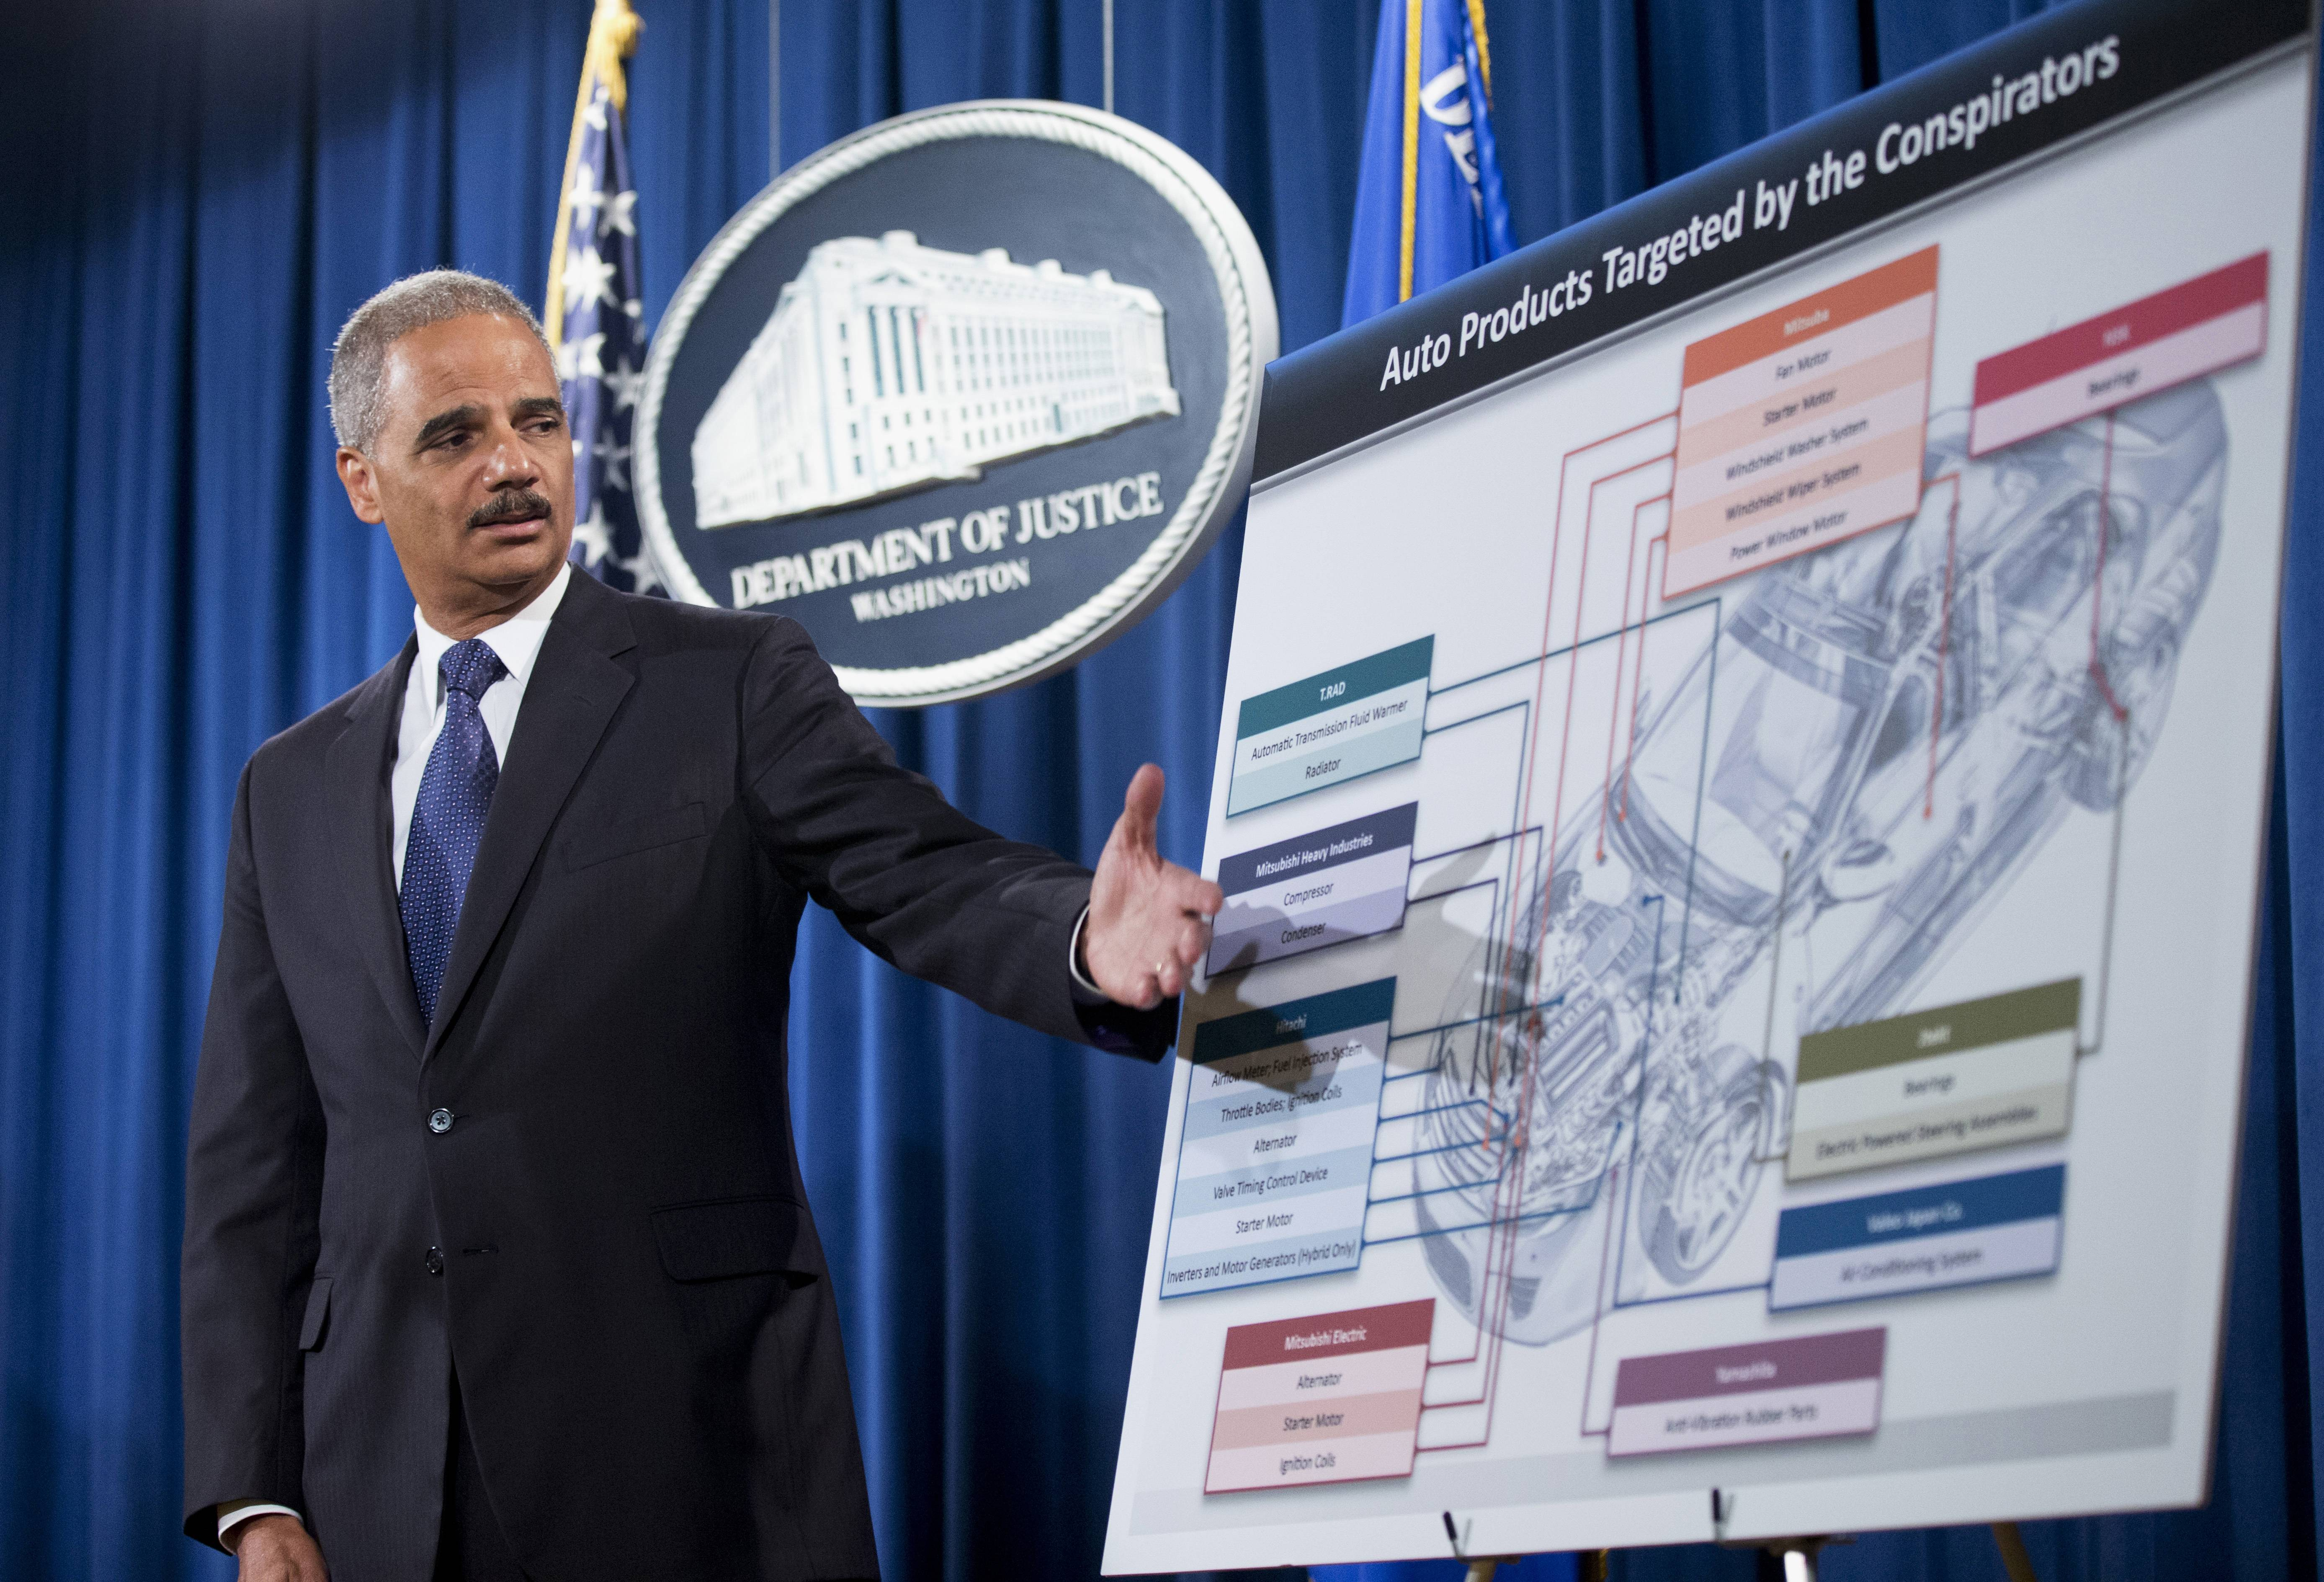 This Sept. 26, 2013, file photo shows Attorney General Eric Holder pointing to an illustration of auto parts during a news conference at the Justice Department in Washington. A federal investigation into price fixing in the auto parts industry, made public four years ago with FBI raids in the Detroit area, has mushroomed into the largest antitrust investigation in Justice Department history -- and authorities say it's not over yet.